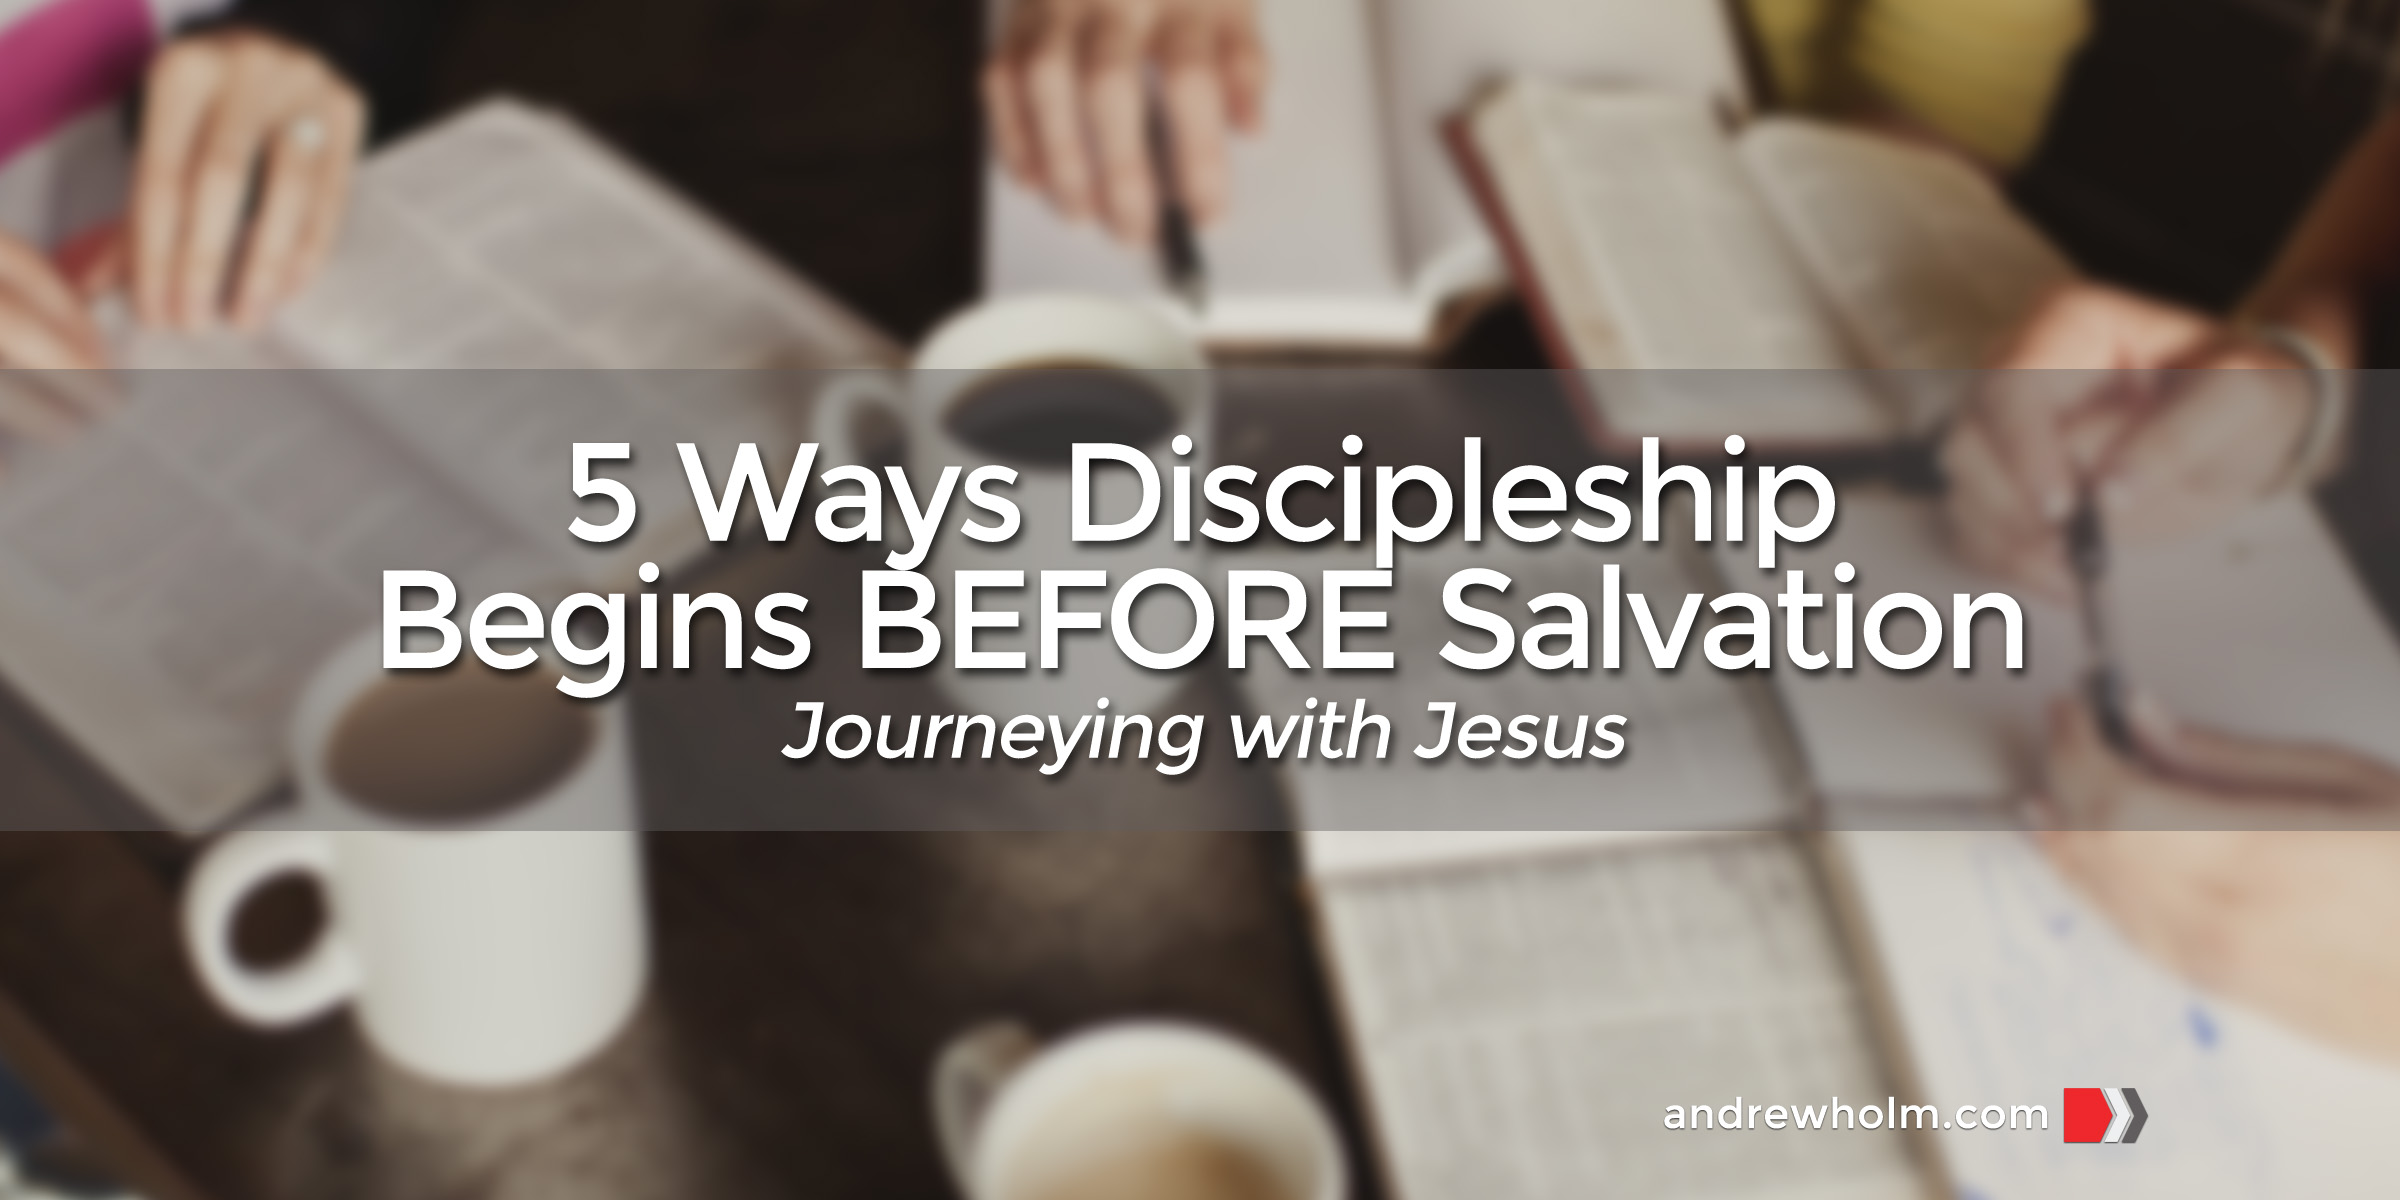 Ways Discipleship Begins Before Belief